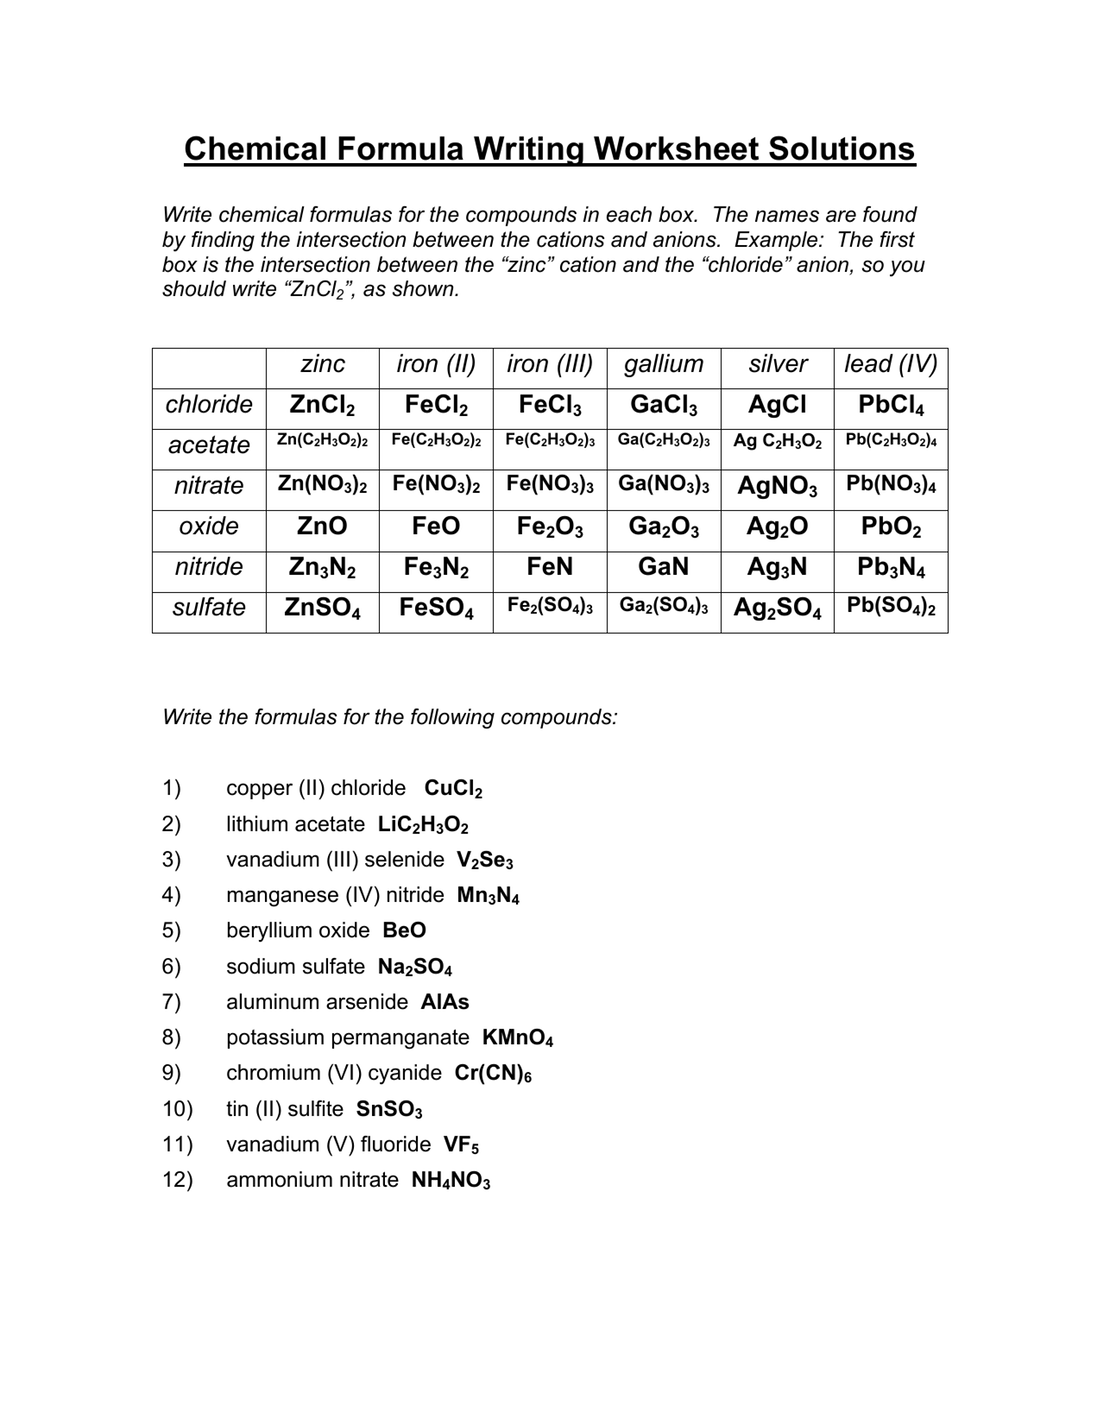 Simple Binary Ionic Compounds Worksheet 2 Answers